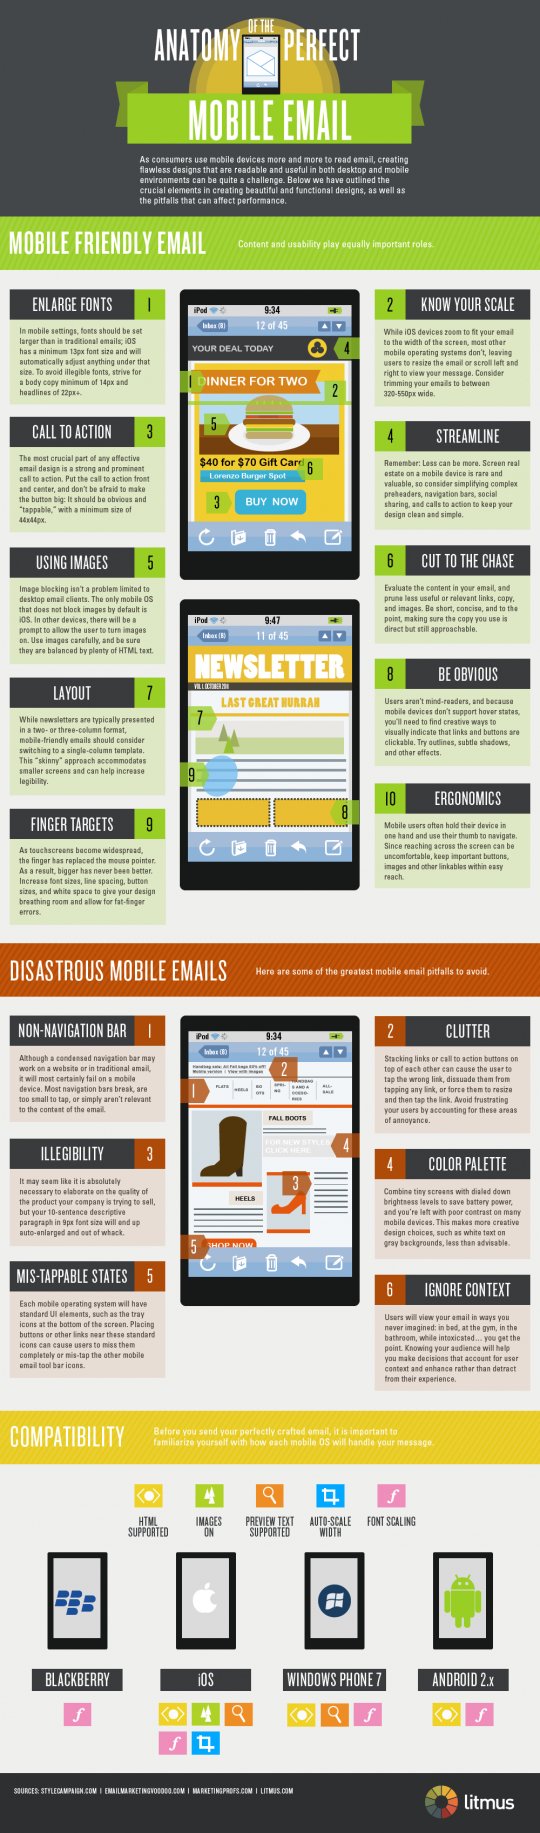 anatomy of a mobile email.png